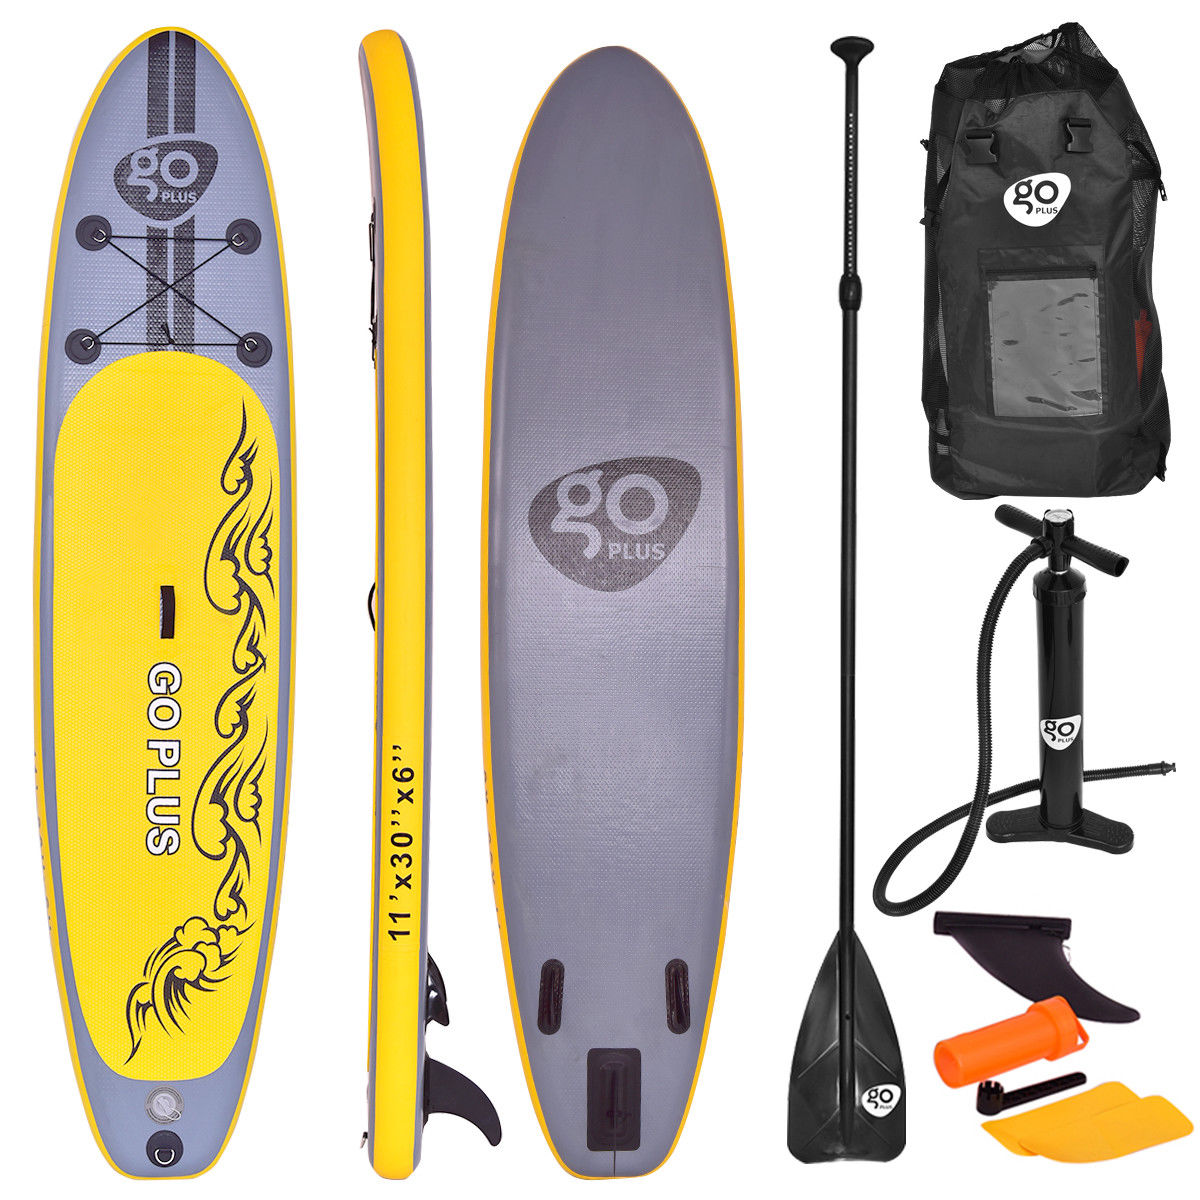 Costway 11' Inflatable Stand Up Paddle Board SUP w  3 Fins Adjustable Paddle Backpack by Costway